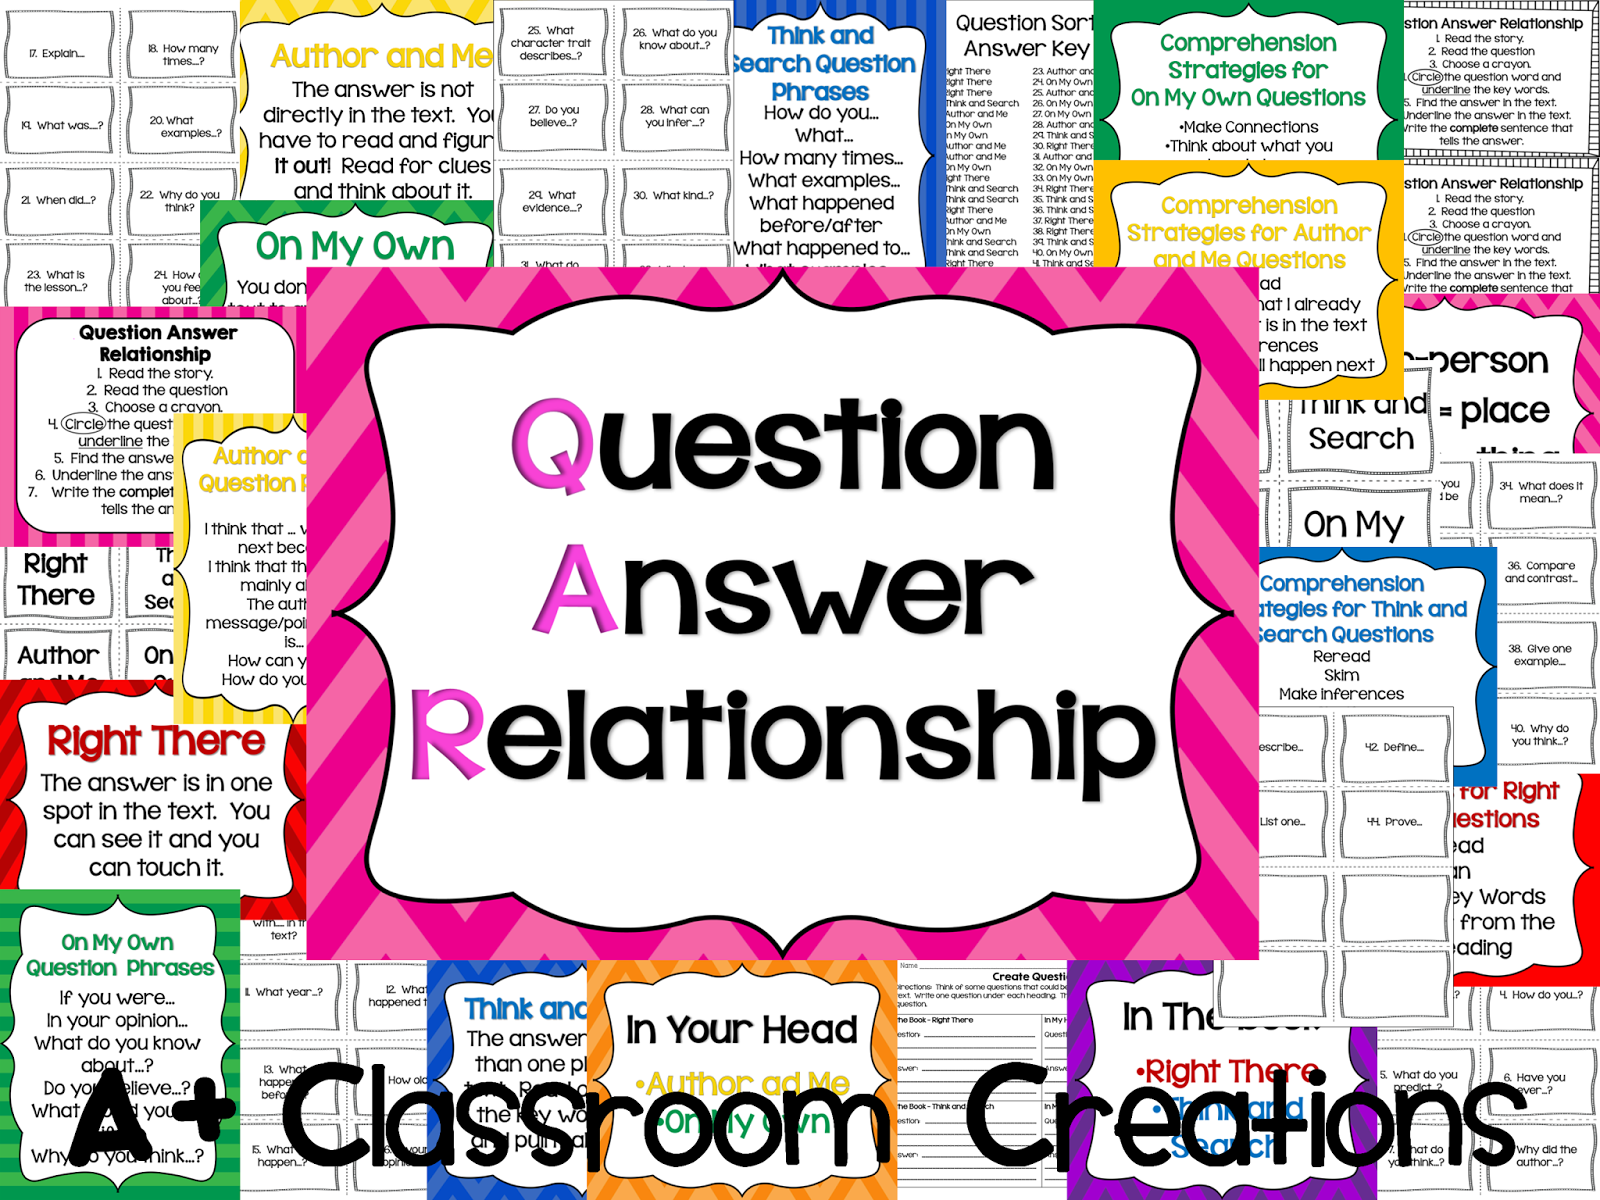 https://www.teacherspayteachers.com/Product/QAR-Question-Answer-Relationship-17-anchor-charts-bookmarks-question-sort-1045098